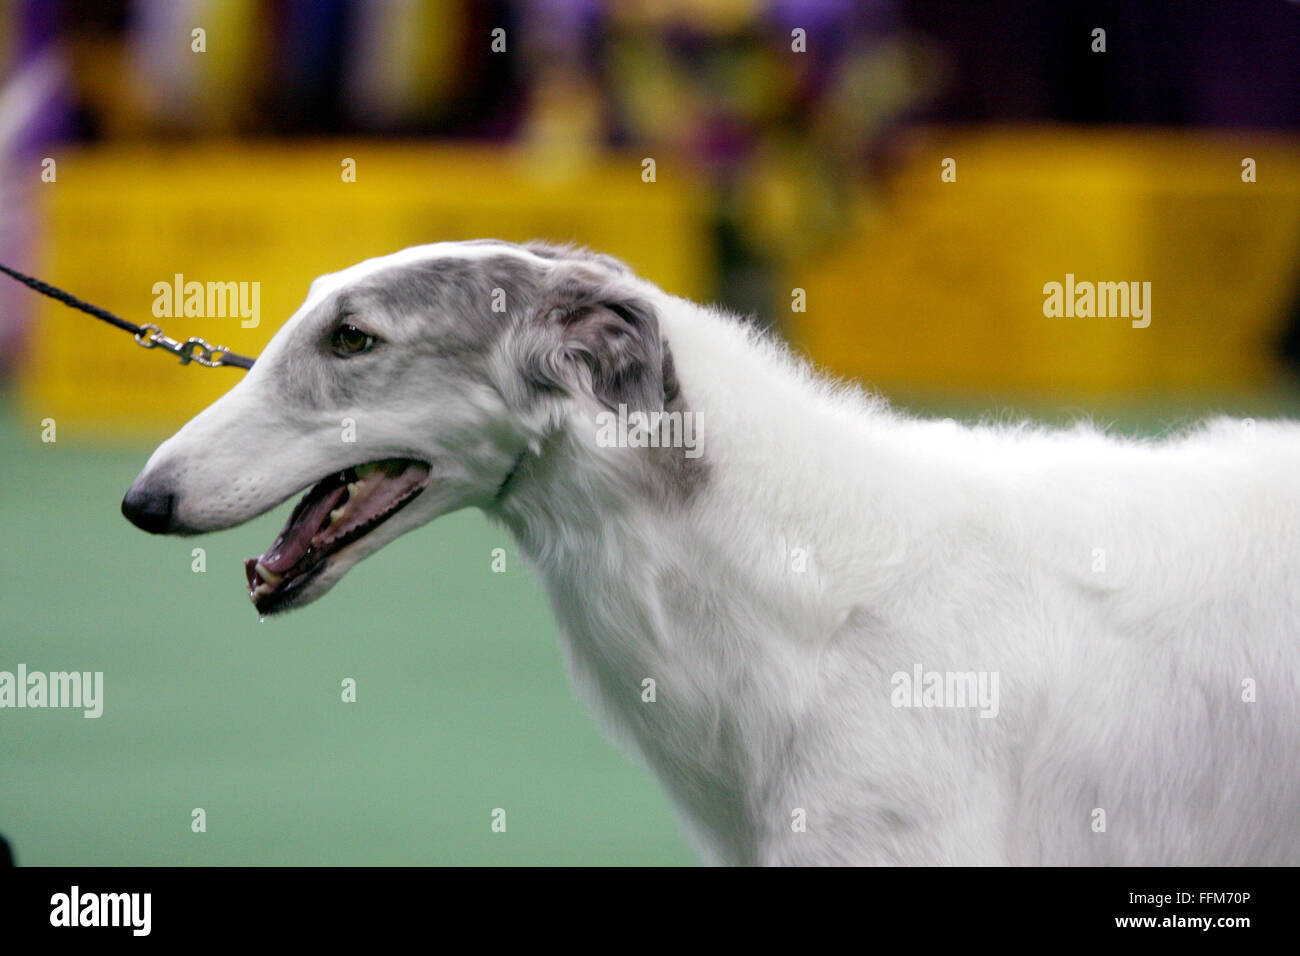 New York, USA. 15th February, 2016. CH Belisarius Jp My Sassy Girl, a Borzol, winning the Hound group competition - Stock Image